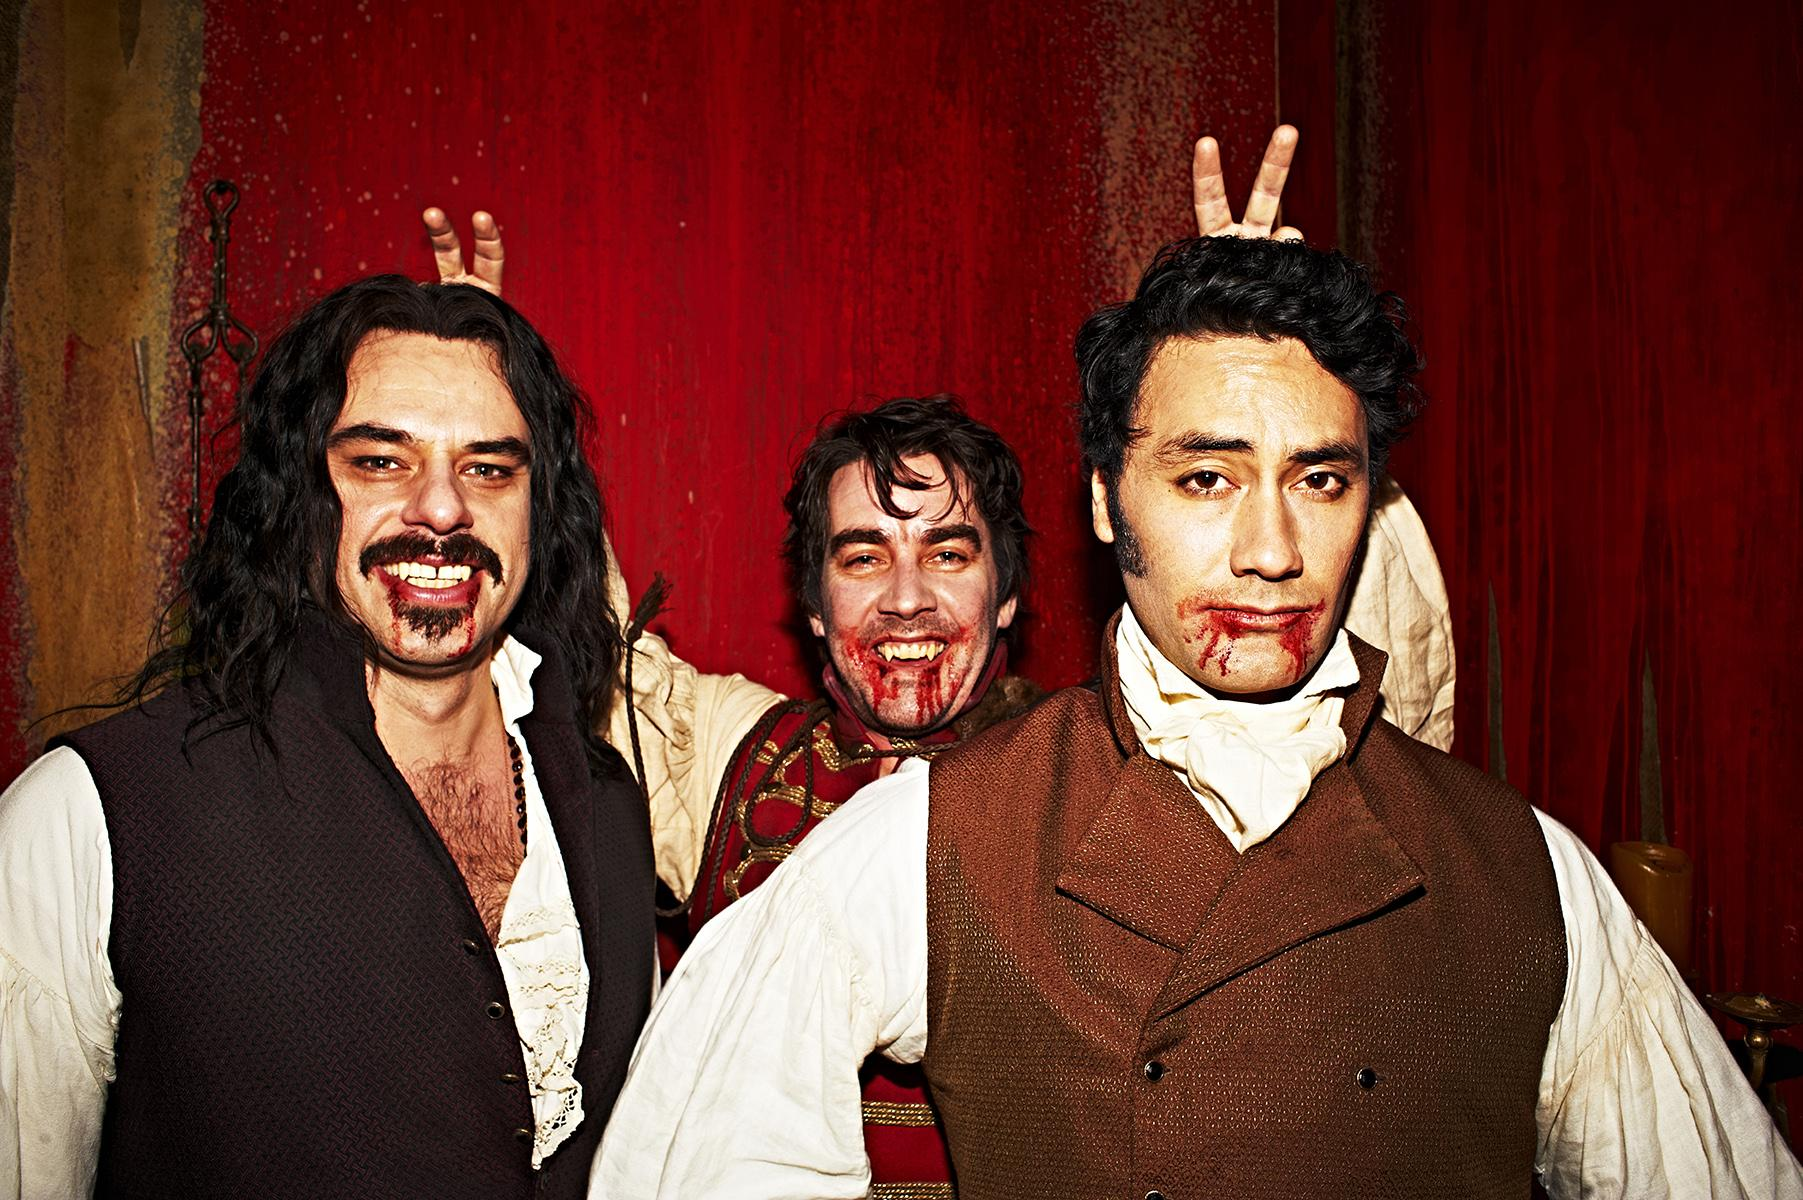 What We Do in the Shadows TV series pilot ordered: Kayvan Novak, Matt Berry and Natasia Demetriou join cast